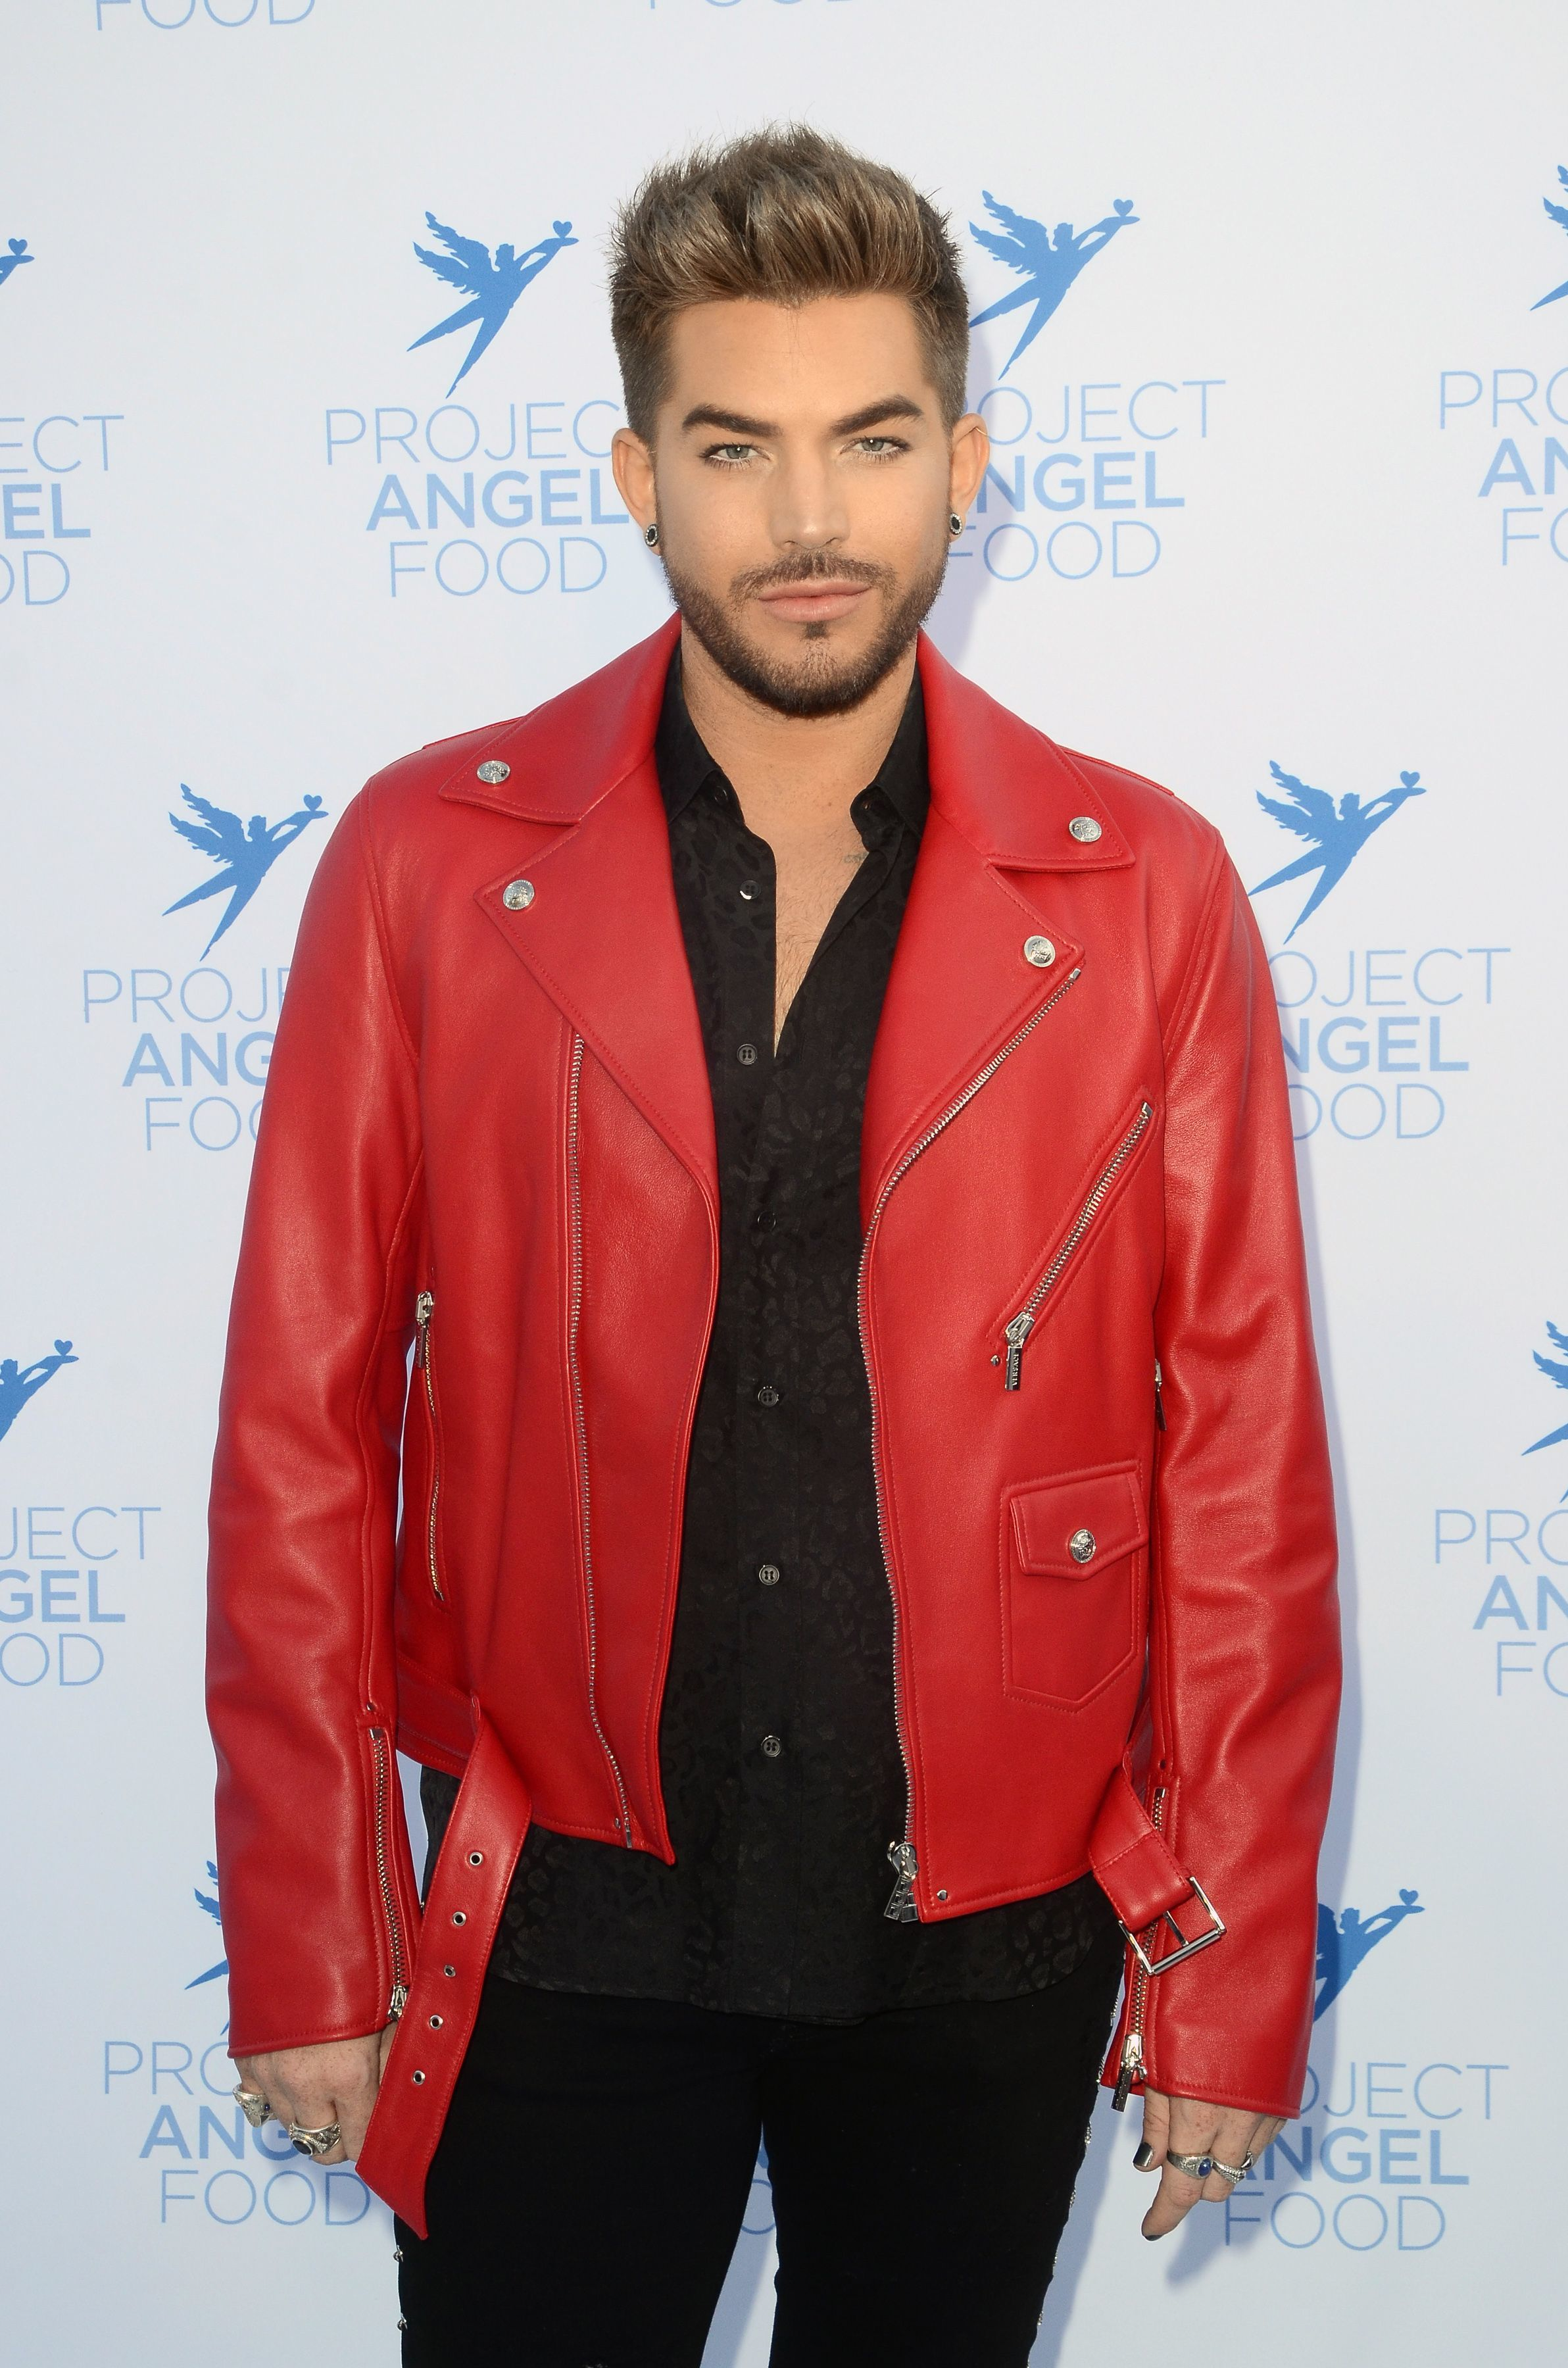 Adam Lambert attends the Project Angel Food Angel Awards Gala in Los Angeles on Aug. 19, 2017.